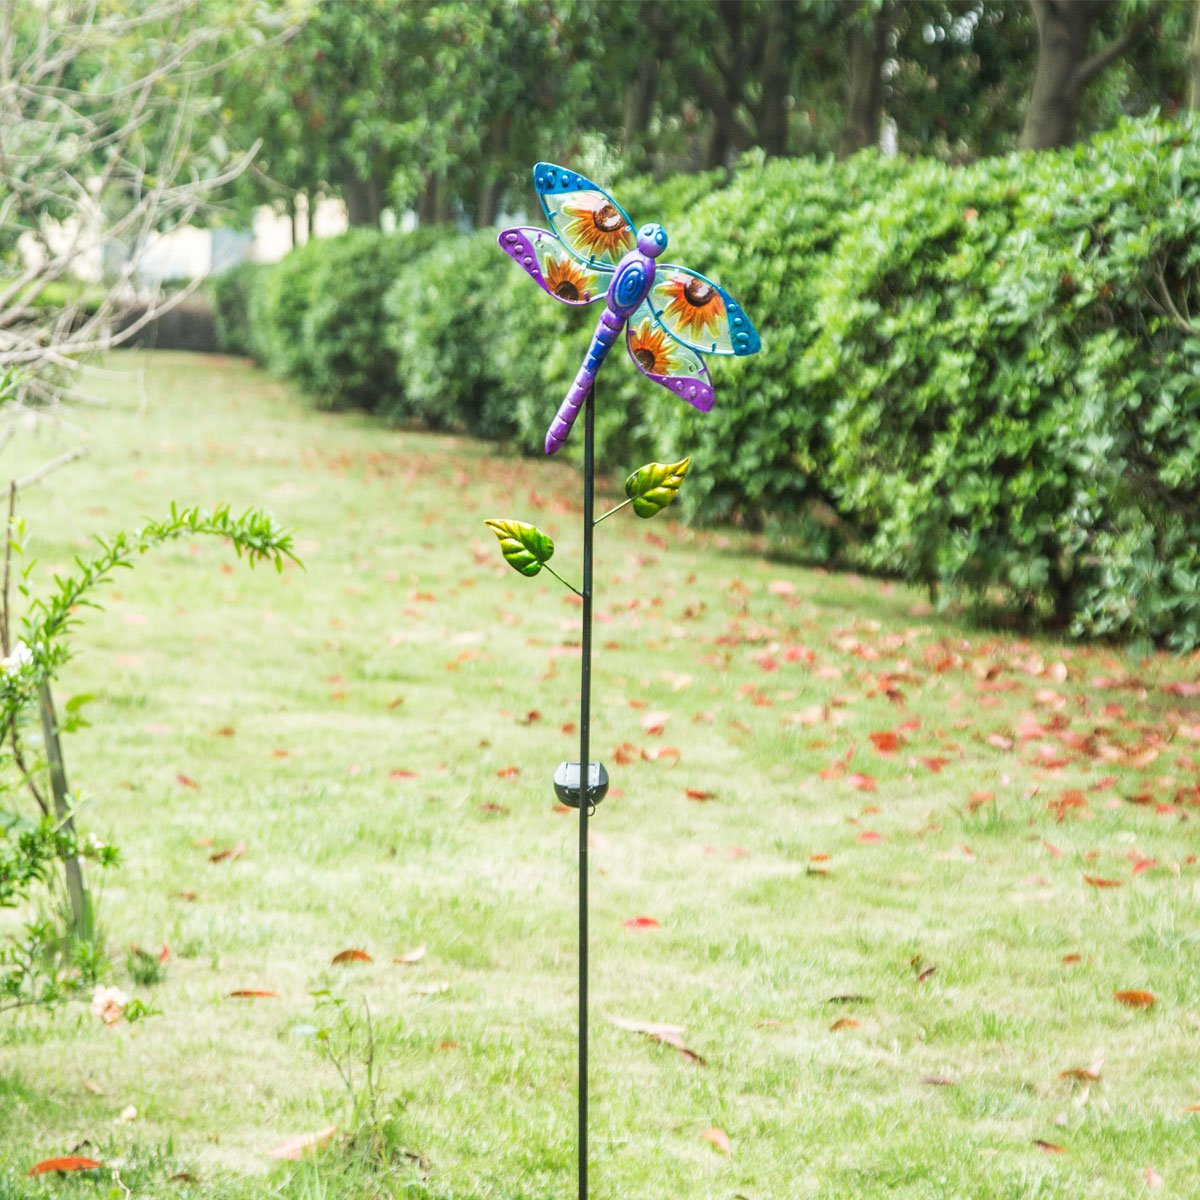 A Ting Solar Garden Stake Metal Decor Stick for Outdoor Lawn Yard Patio Decoration,Gragonfly